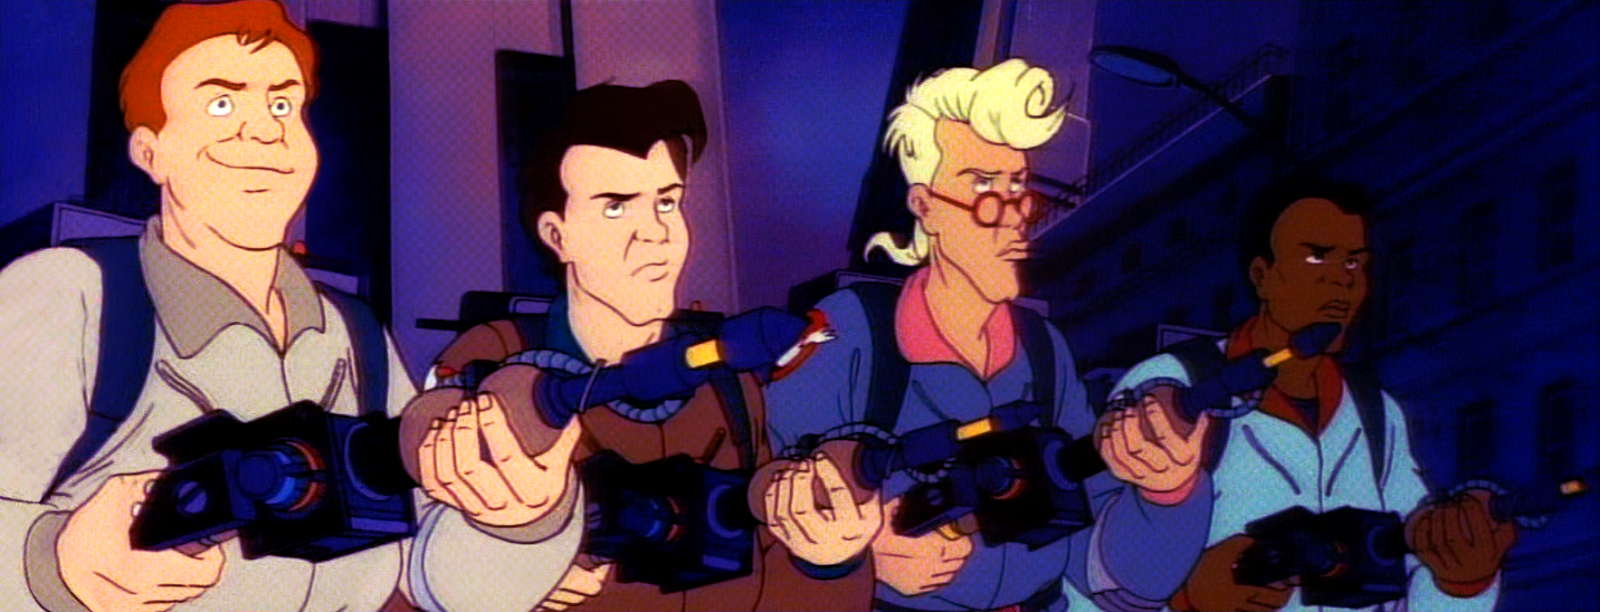 The real ghostbusters were from japan